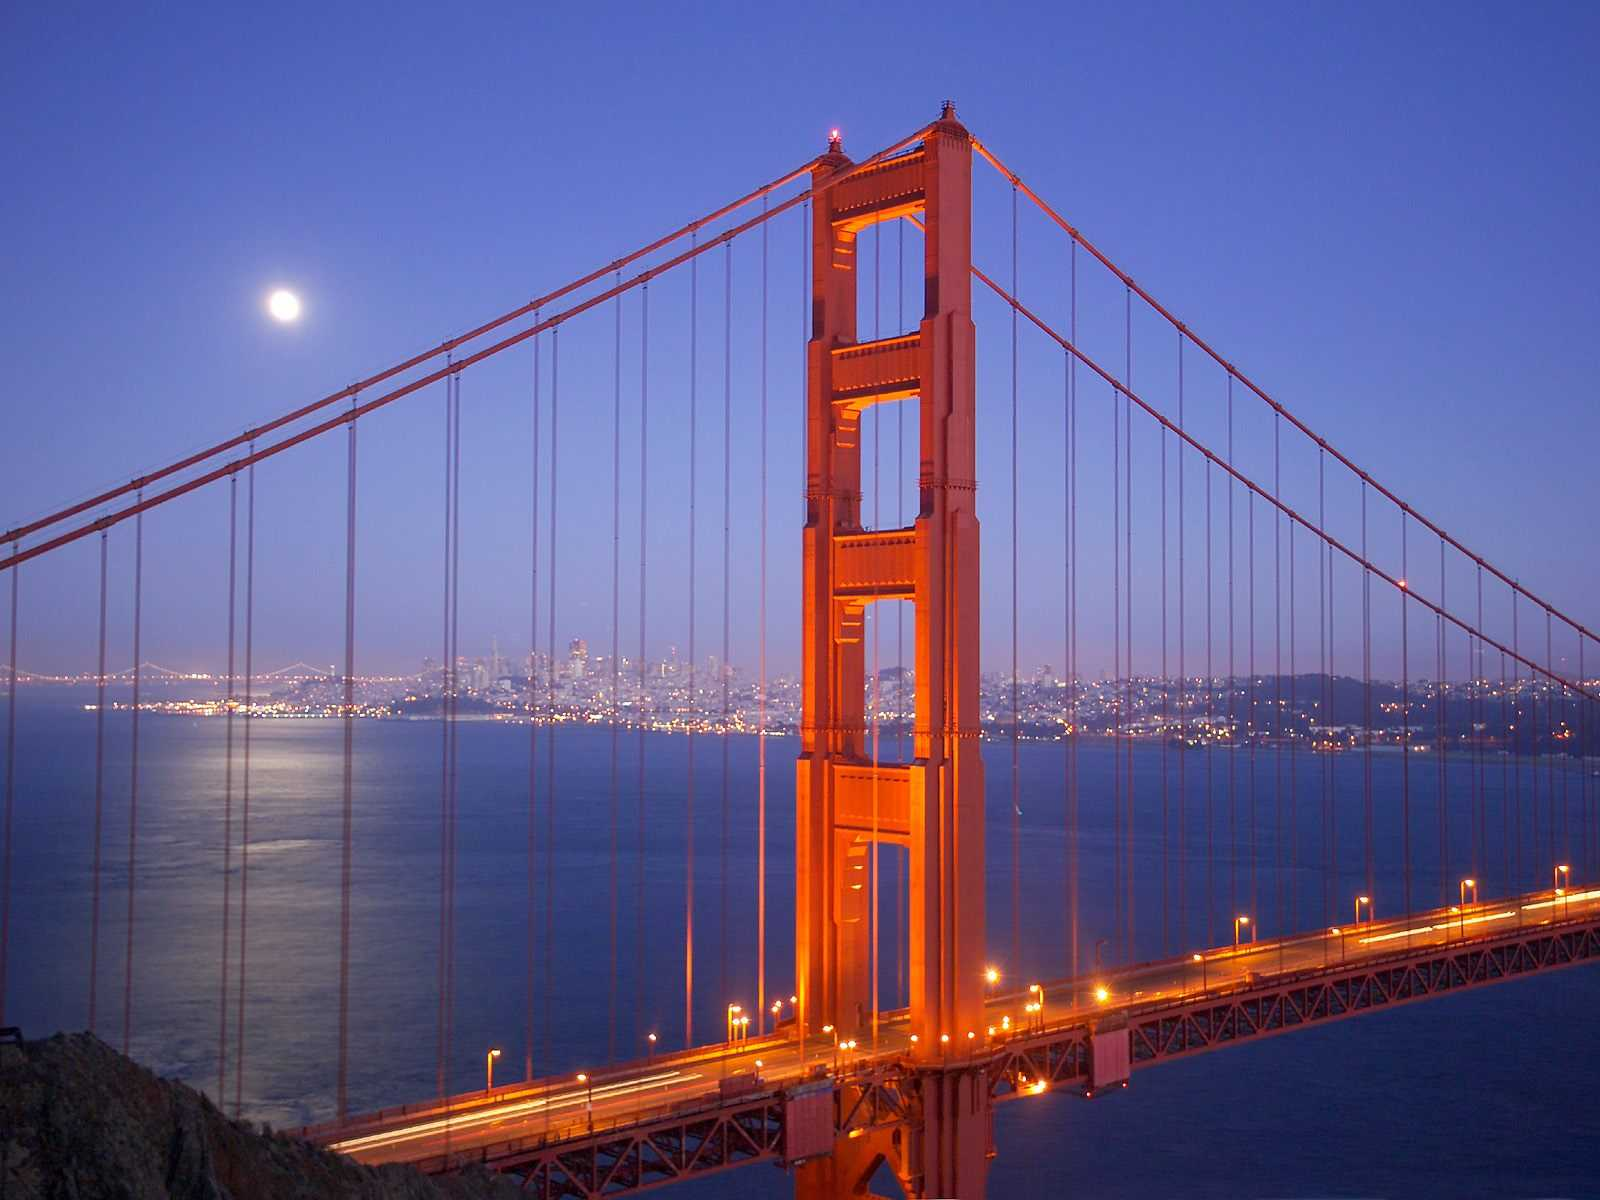 San_Francisco's_Golden_Gate_Bridge,_California,_USA